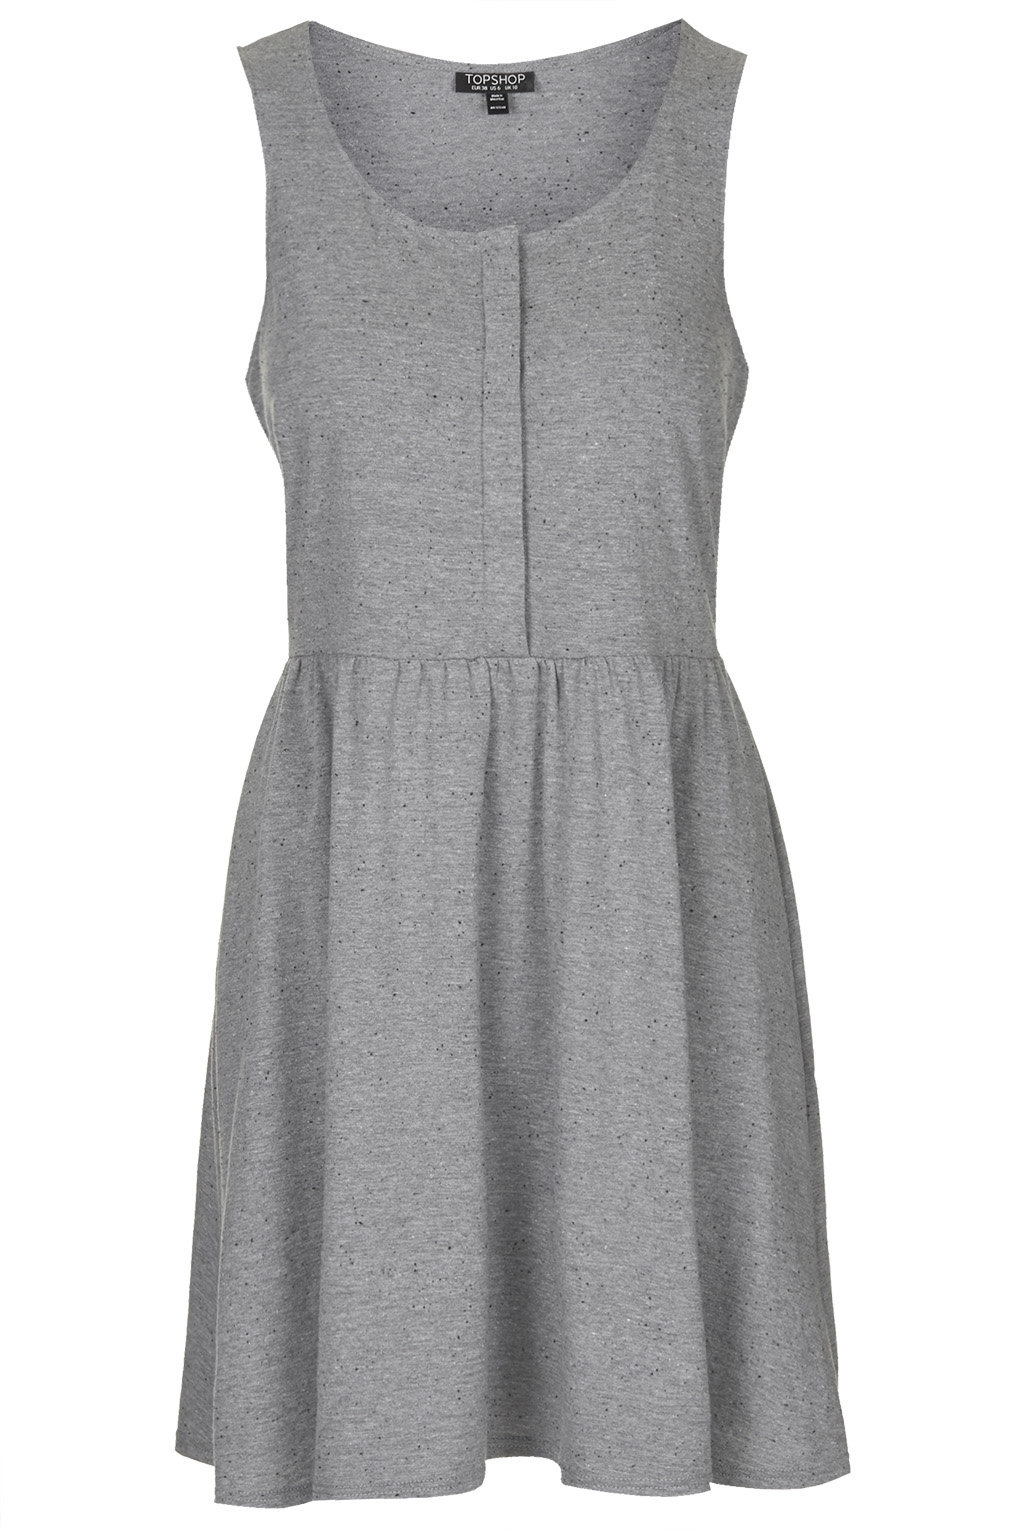 Current Crush: Topshop Sleeveless Smock Dress